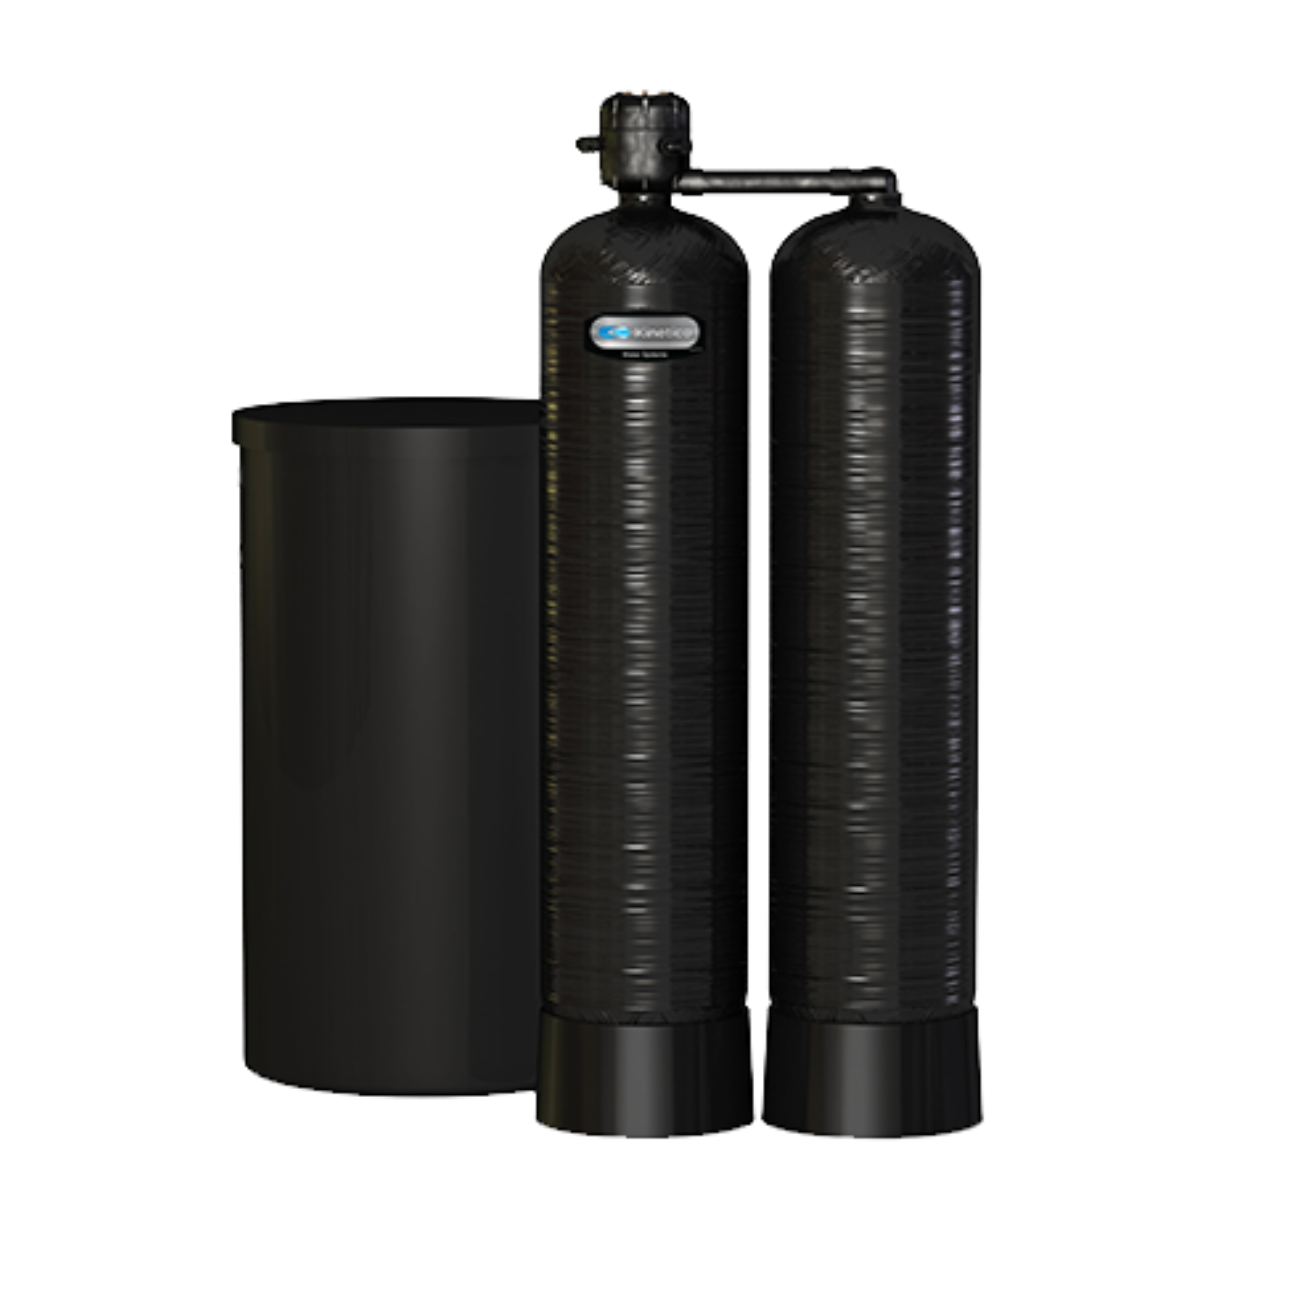 Commercial & Industrial Water Filtration Systems - Water touches every aspect of the guest experience. Off tastes and odors impact that experience and everything that uses water as an ingredient.